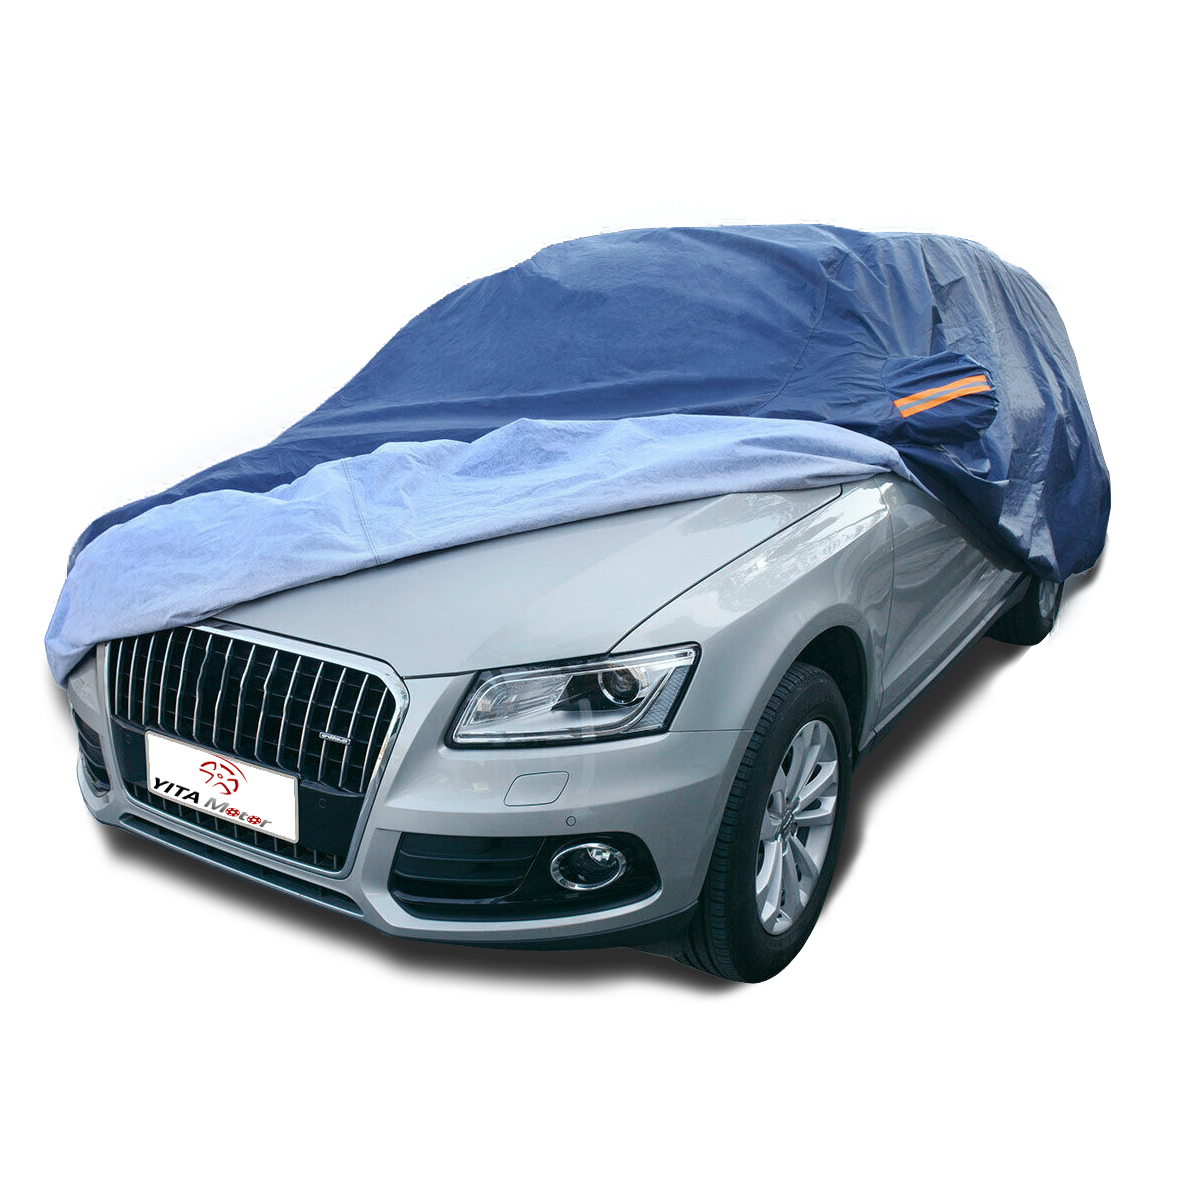 Full Car Cover Breathable Dust Rain Snow Resistant Protection Indoor Outdoor US